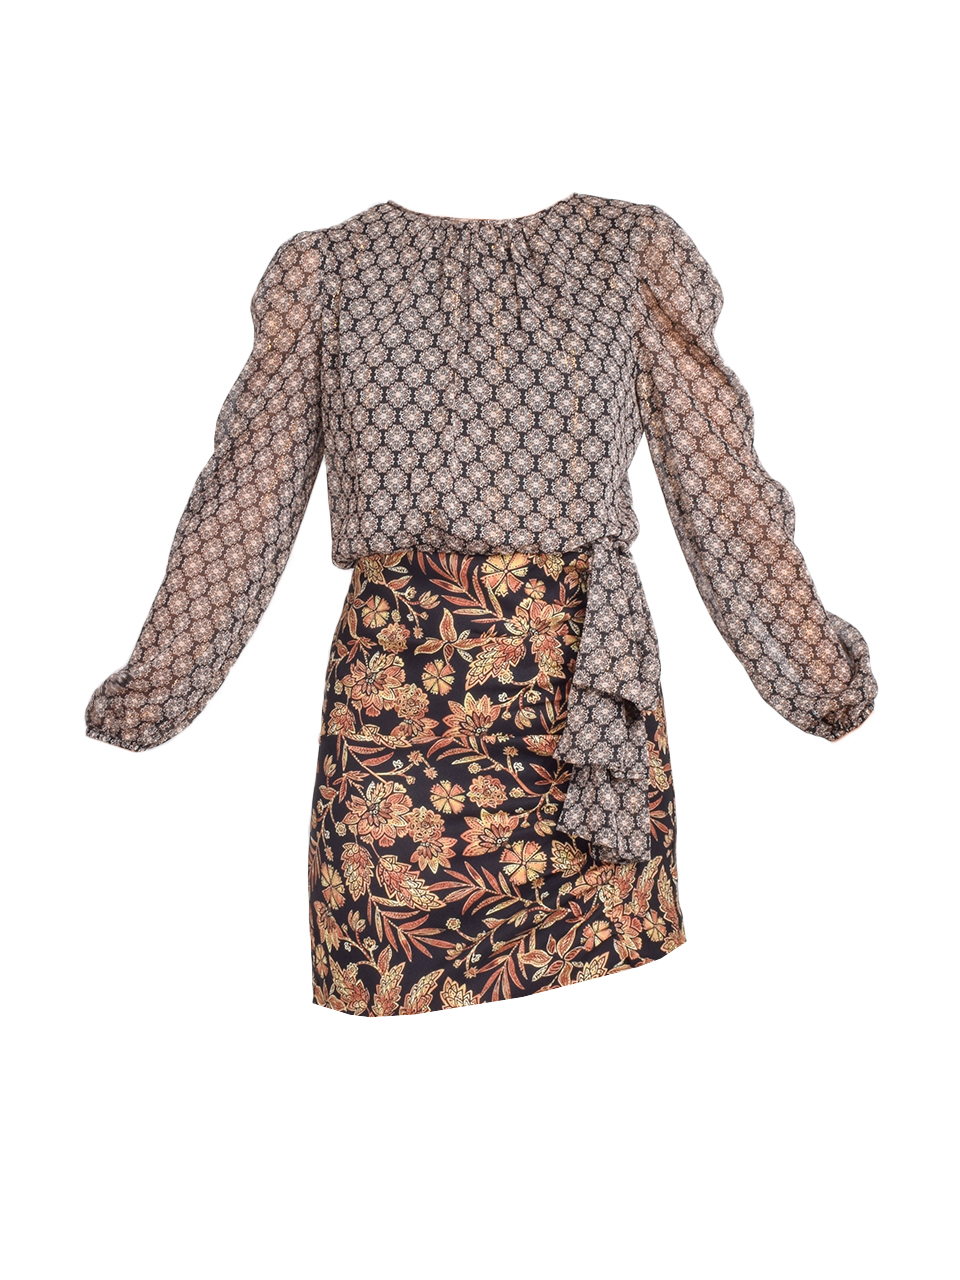 MISA Amber Dress in Gilded Paisley Product Shot